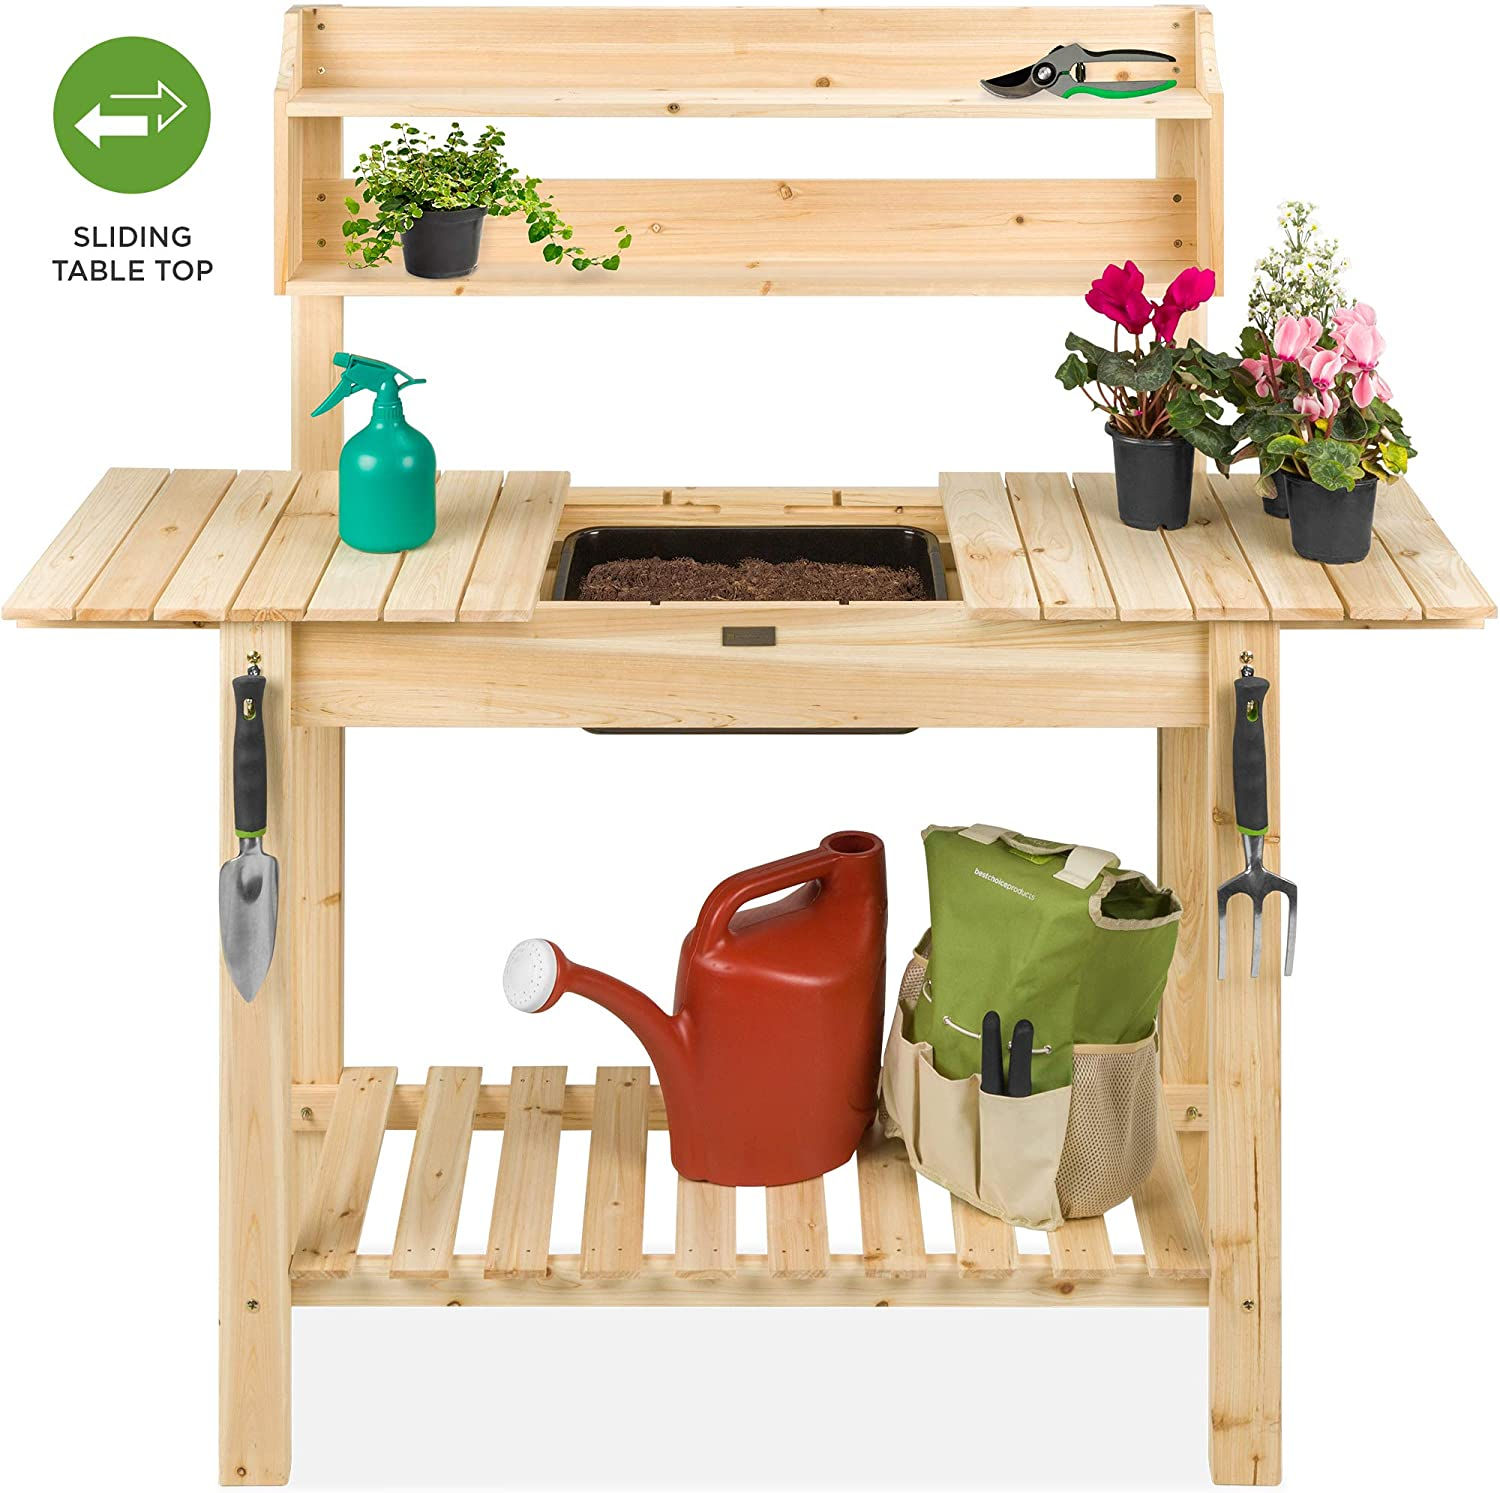 Lakewood 3 Person Swing, Amazon Com Best Choice Products Outdoor Wood Garden Potting Bench Workstation Table W Sliding Tabletop Food Grade Dry Sink Storage Shelves Natural Garden Outdoor